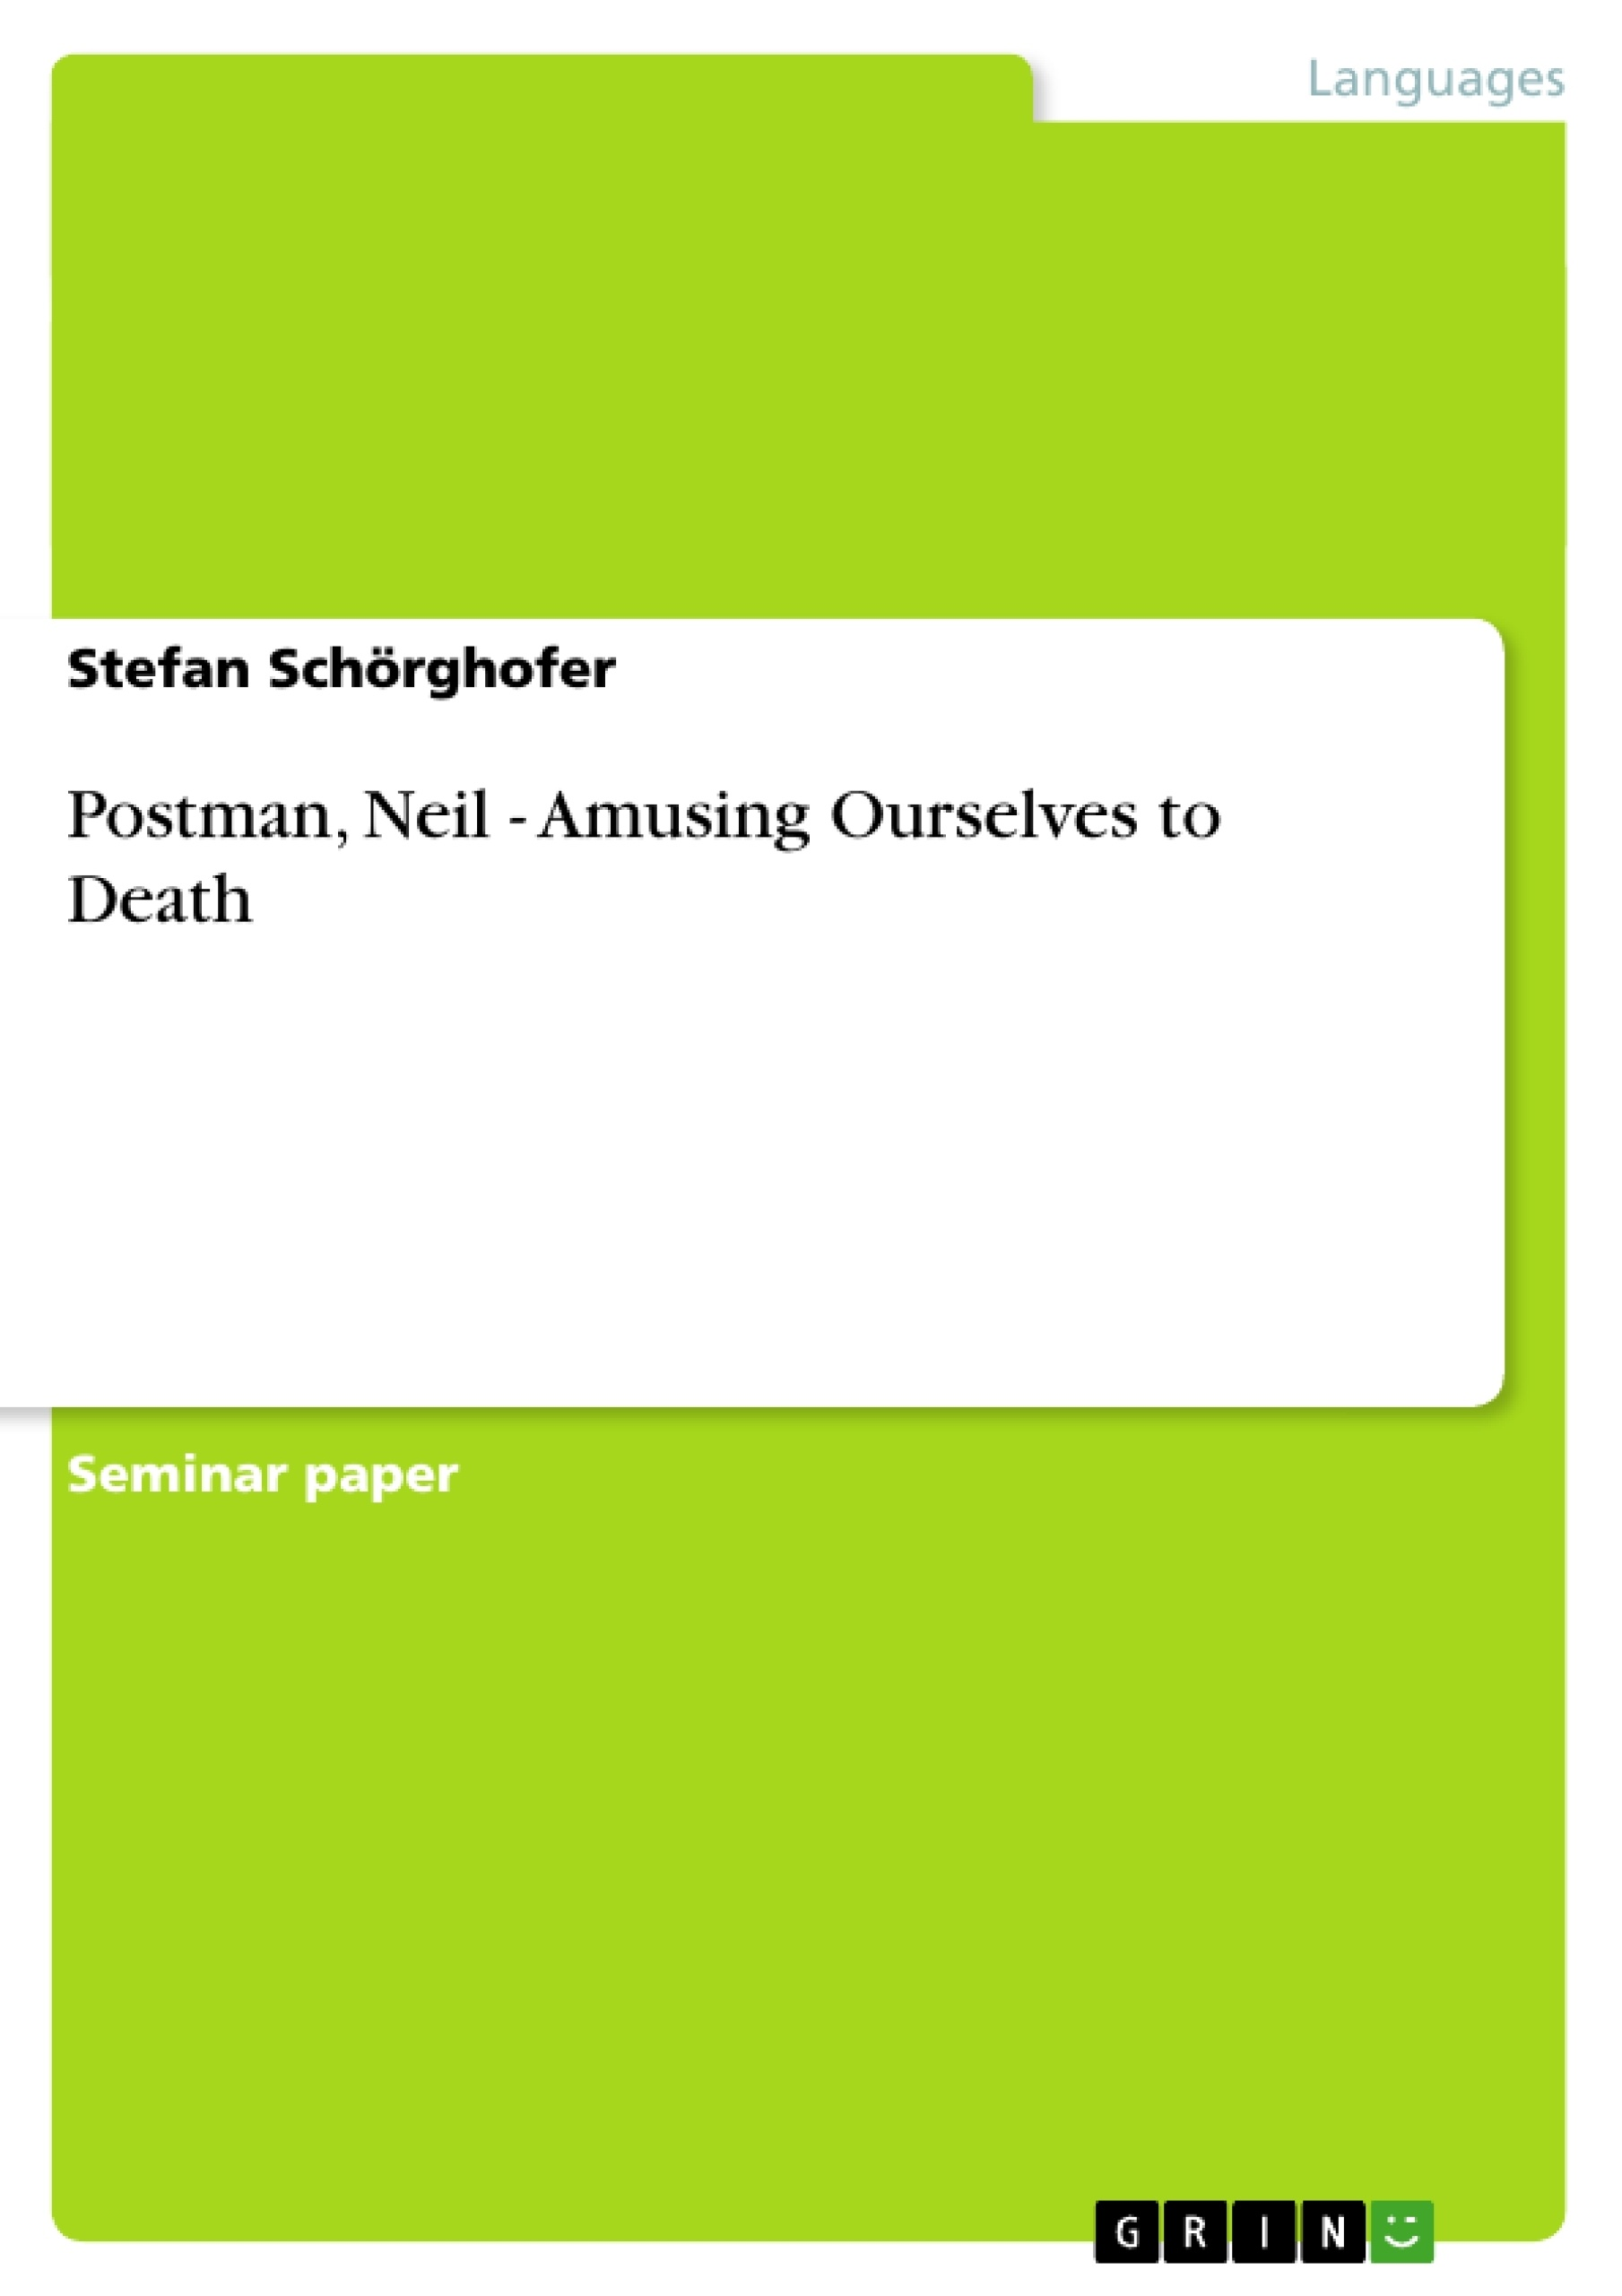 Title: Postman, Neil - Amusing Ourselves to Death